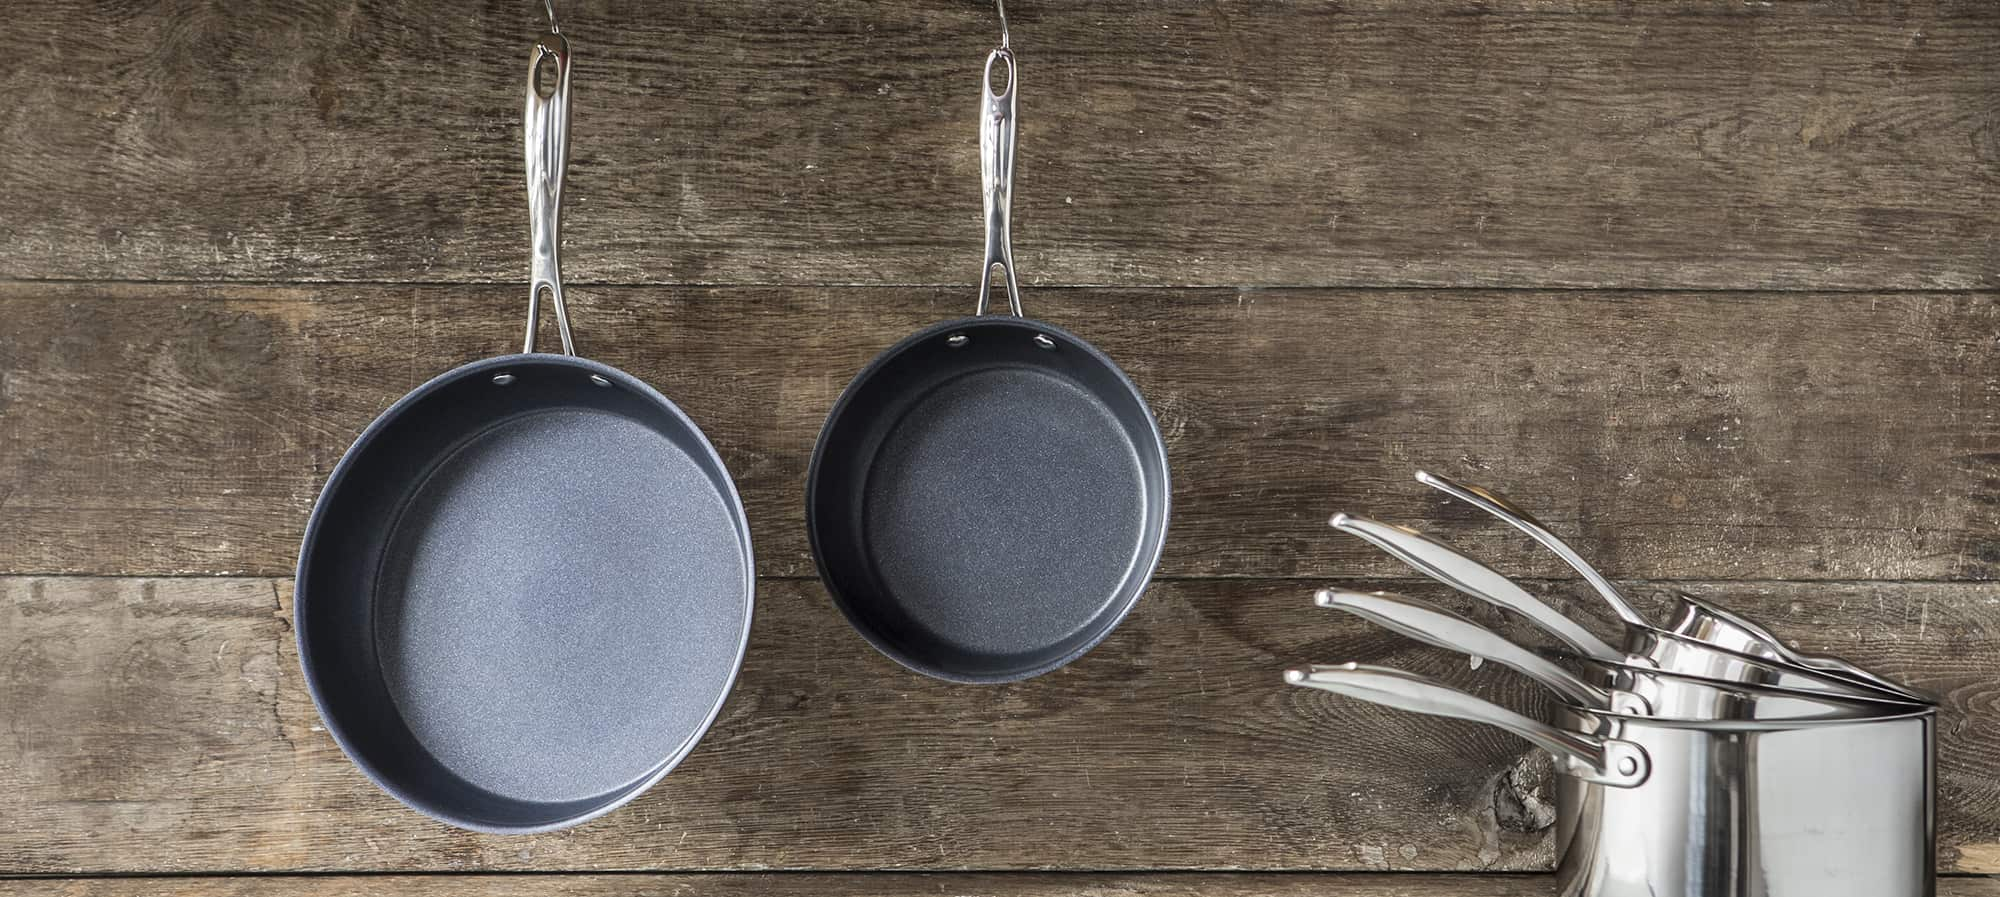 Pots and Pans For Your Kitchen